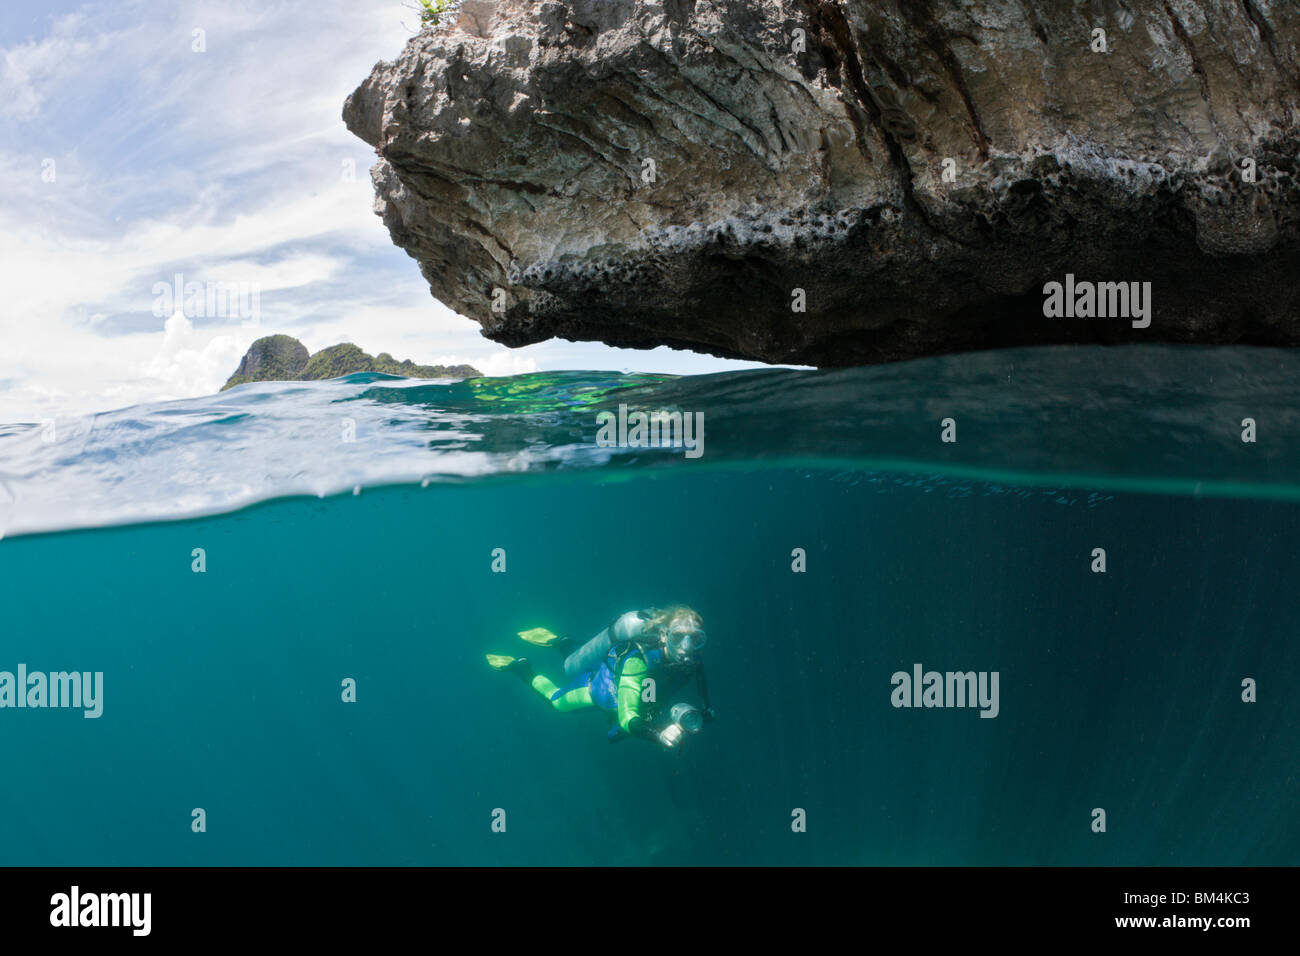 Scuba Diver in Shallow, Raja Ampat, West Papua, Indonesia Stock Photo